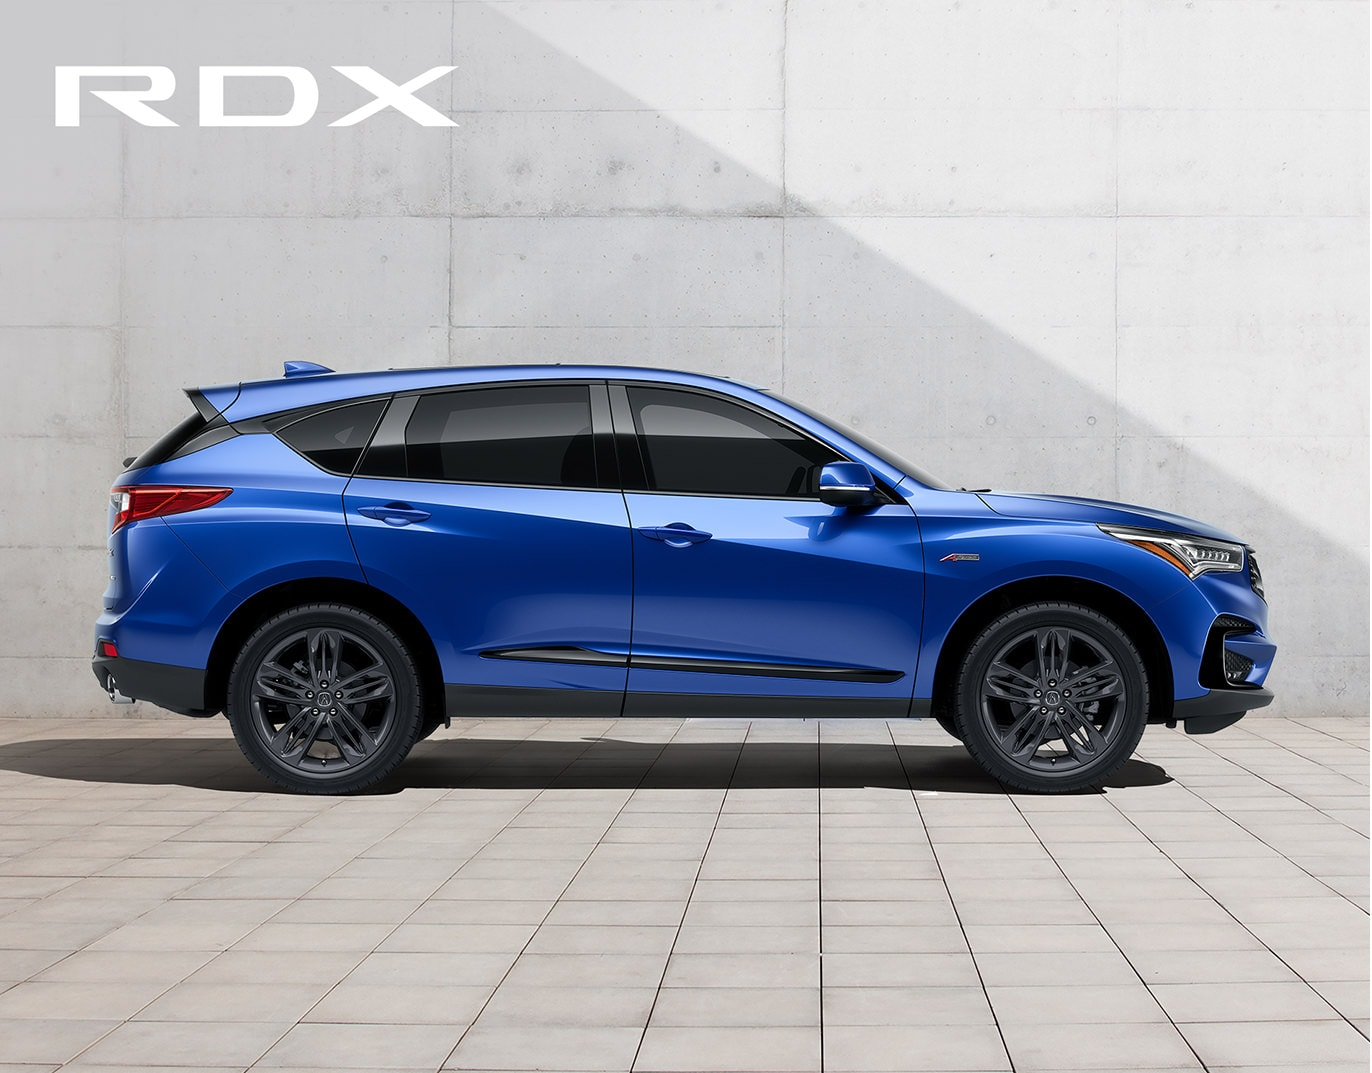 Acura RDX Best Midsize SUV Overview - Acura suv lease